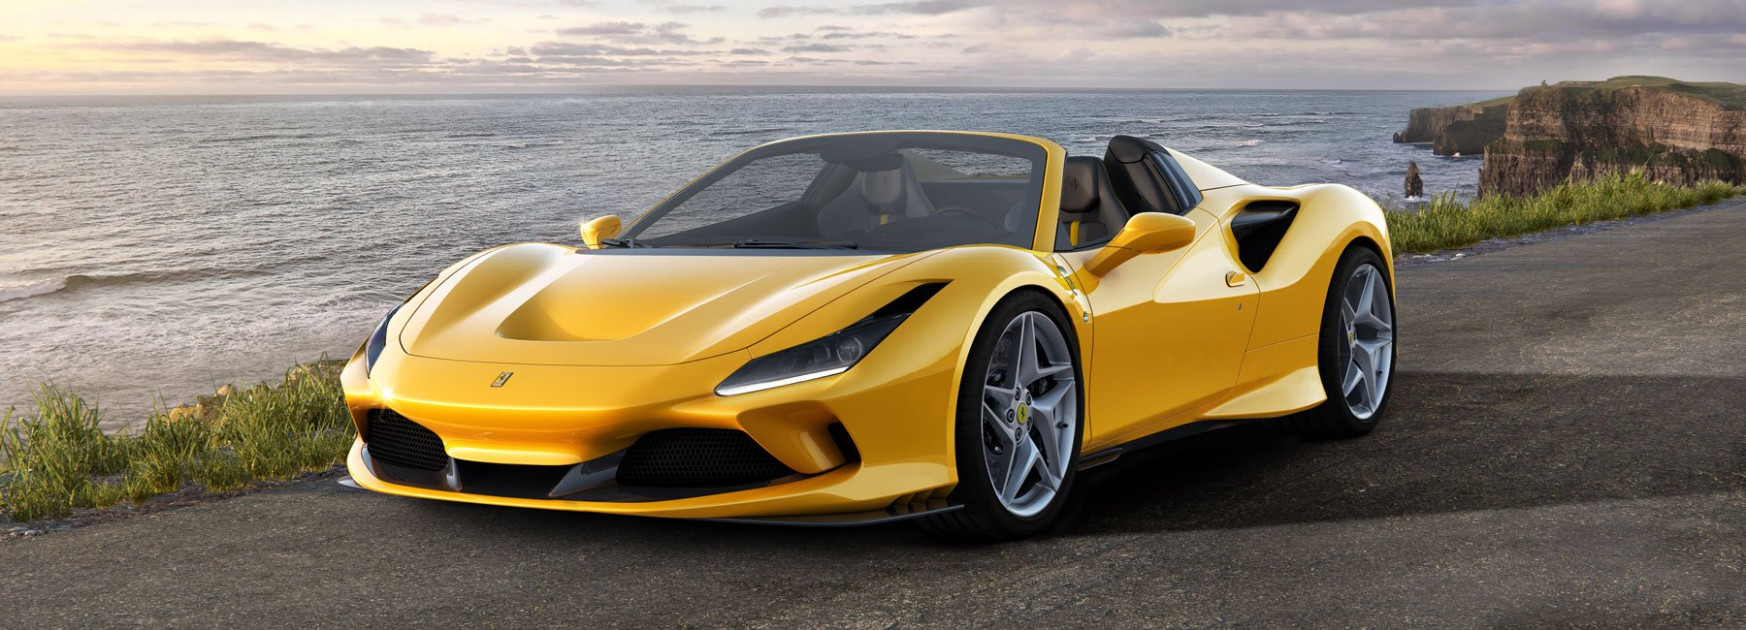 ferrari reveals 9 f9 spider with more power and less weight - ferrari cars 2020